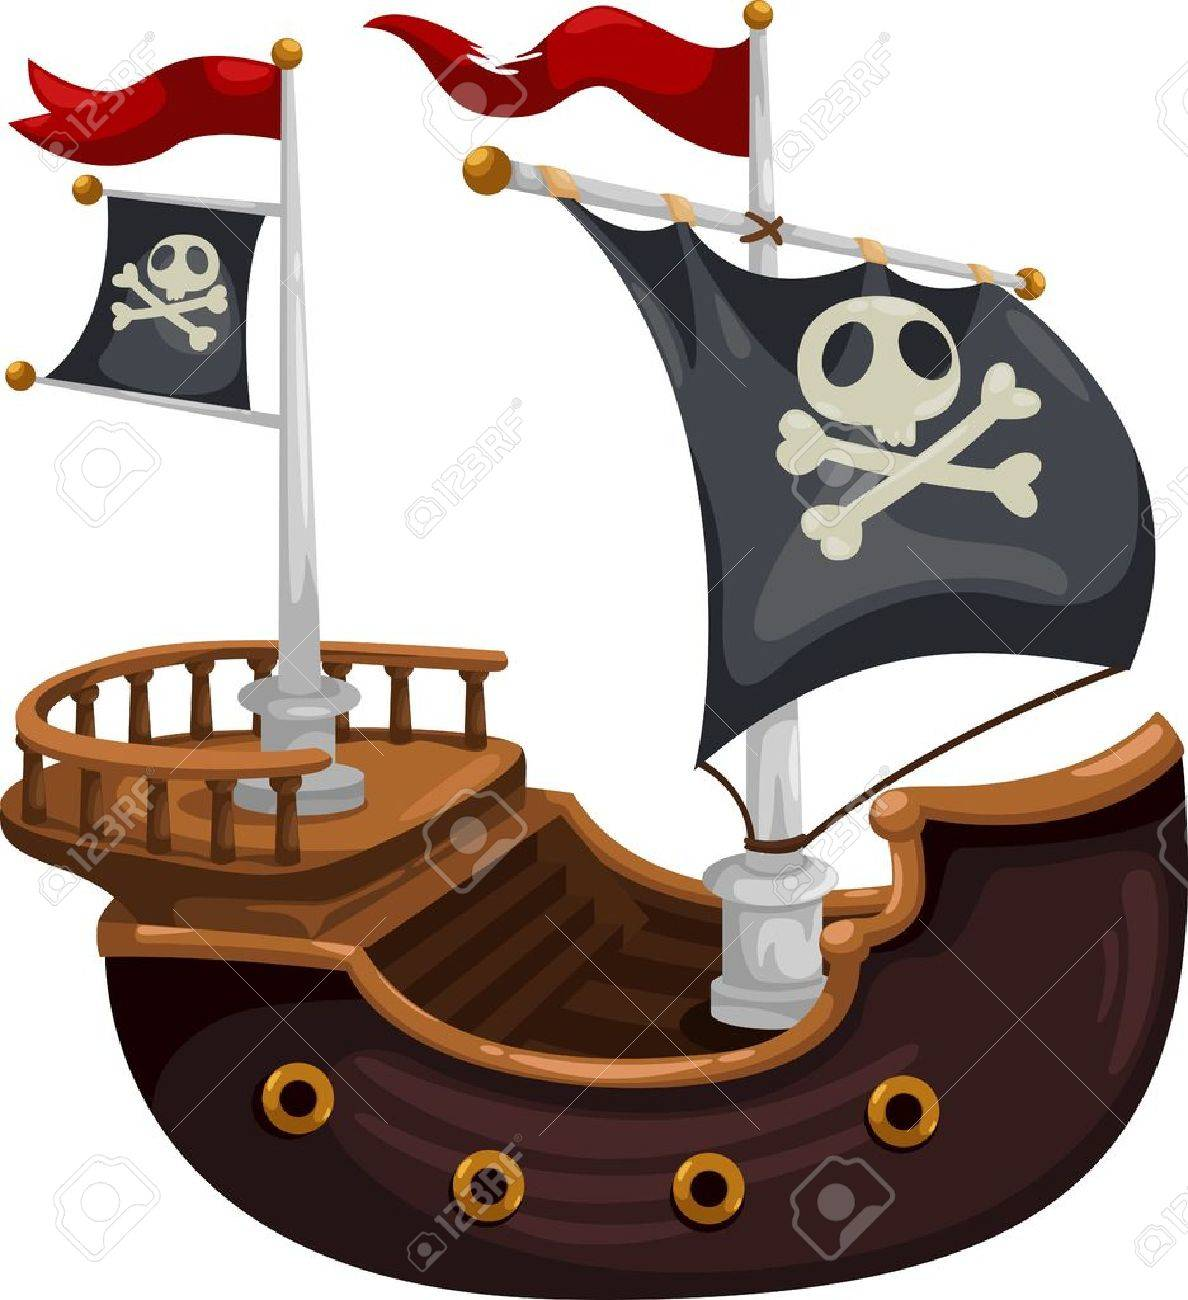 Stock Illustrations of Pirate Ship - a dangerous Pirate Ship ...